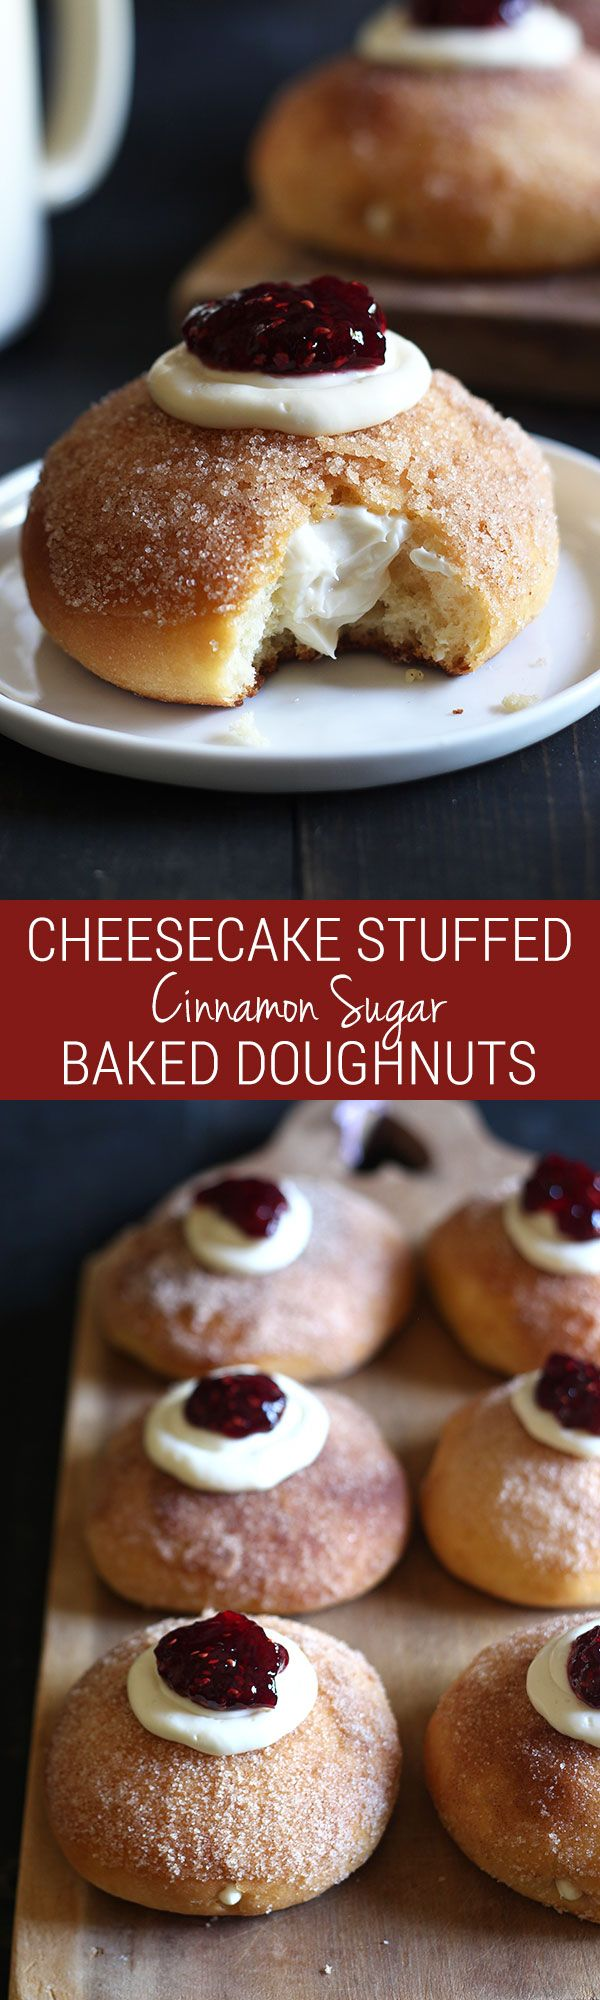 DYING!! These look SOOOO good! Cheesecake Stuffed Baked Doughnuts feature a fluffy yeast-raised baked doughnut coated in cinnamon sugar, stuffed with sweetened cream cheese, and topped with a dollop of raspberry jam.